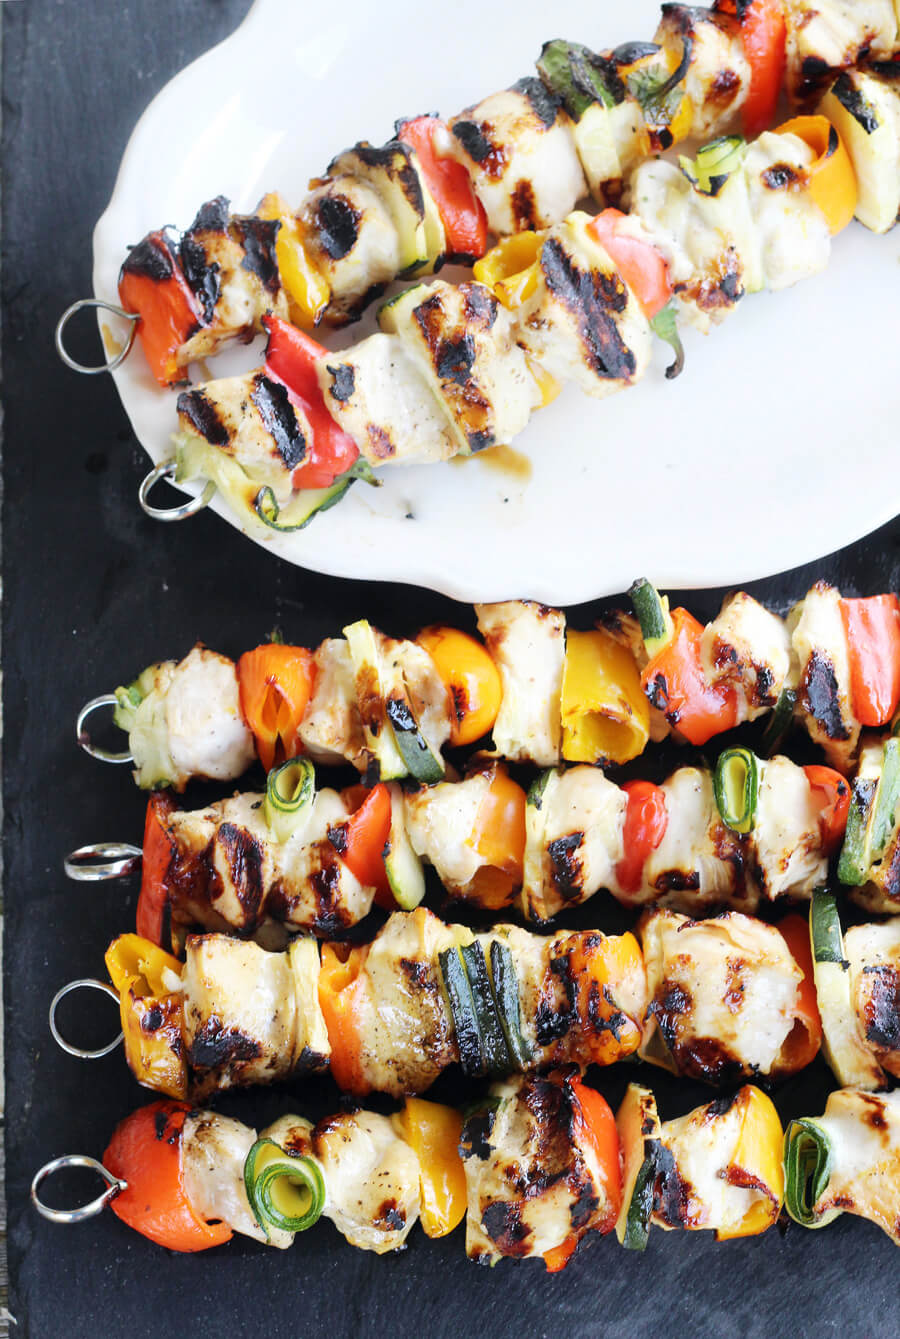 You are going to love this easy recipe for grilled Marinated Chicken Skewers with fresh veggies. You won't believe how simple and delicious it is to get tender grilled chicken using our tangy marinade recipe. We have a little trick up our sleeves. No worries, it is a yummy one.